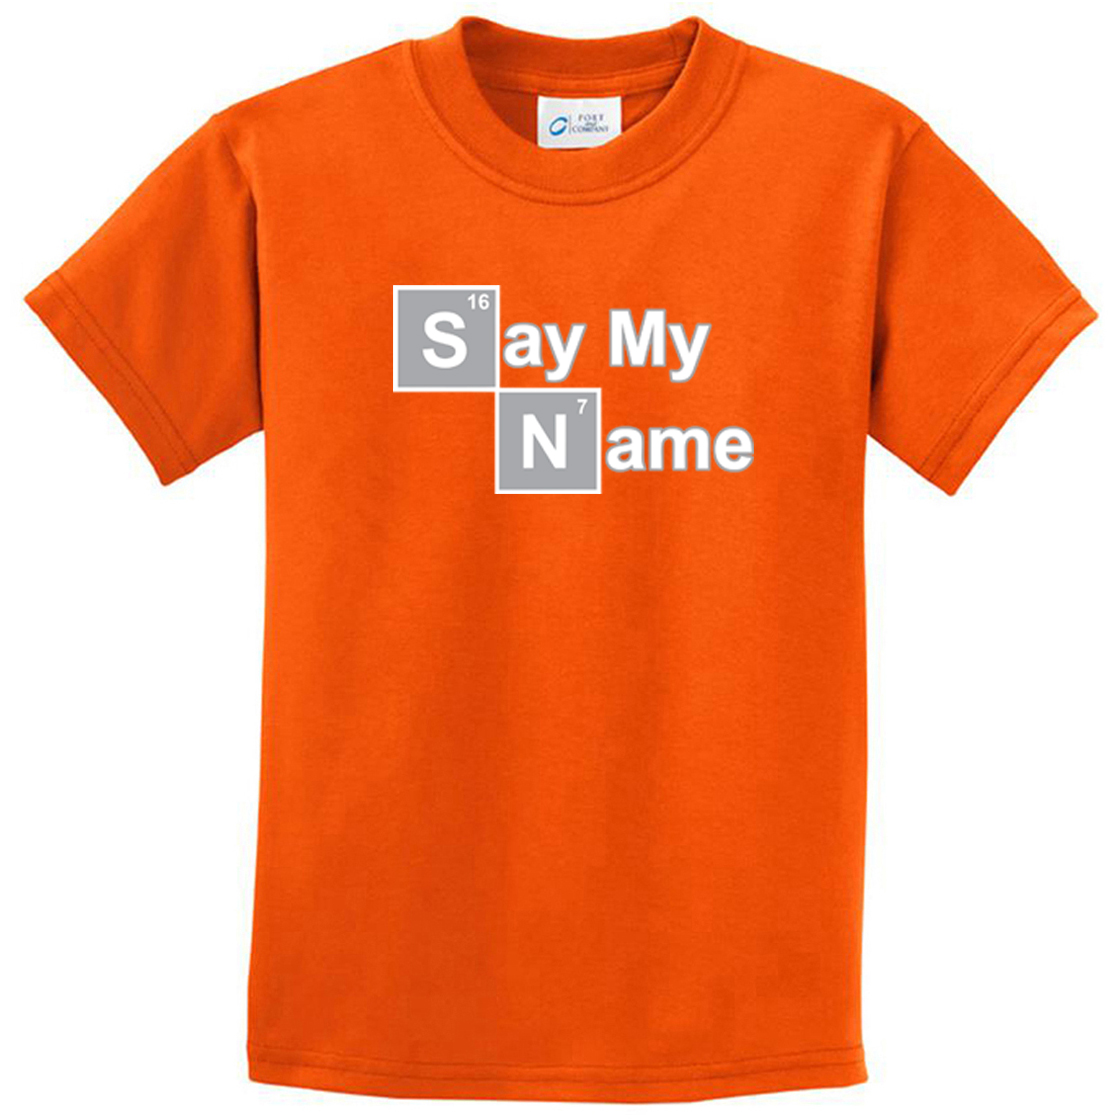 kids shirt say my name tee t shirt say my name kids shirts. Black Bedroom Furniture Sets. Home Design Ideas